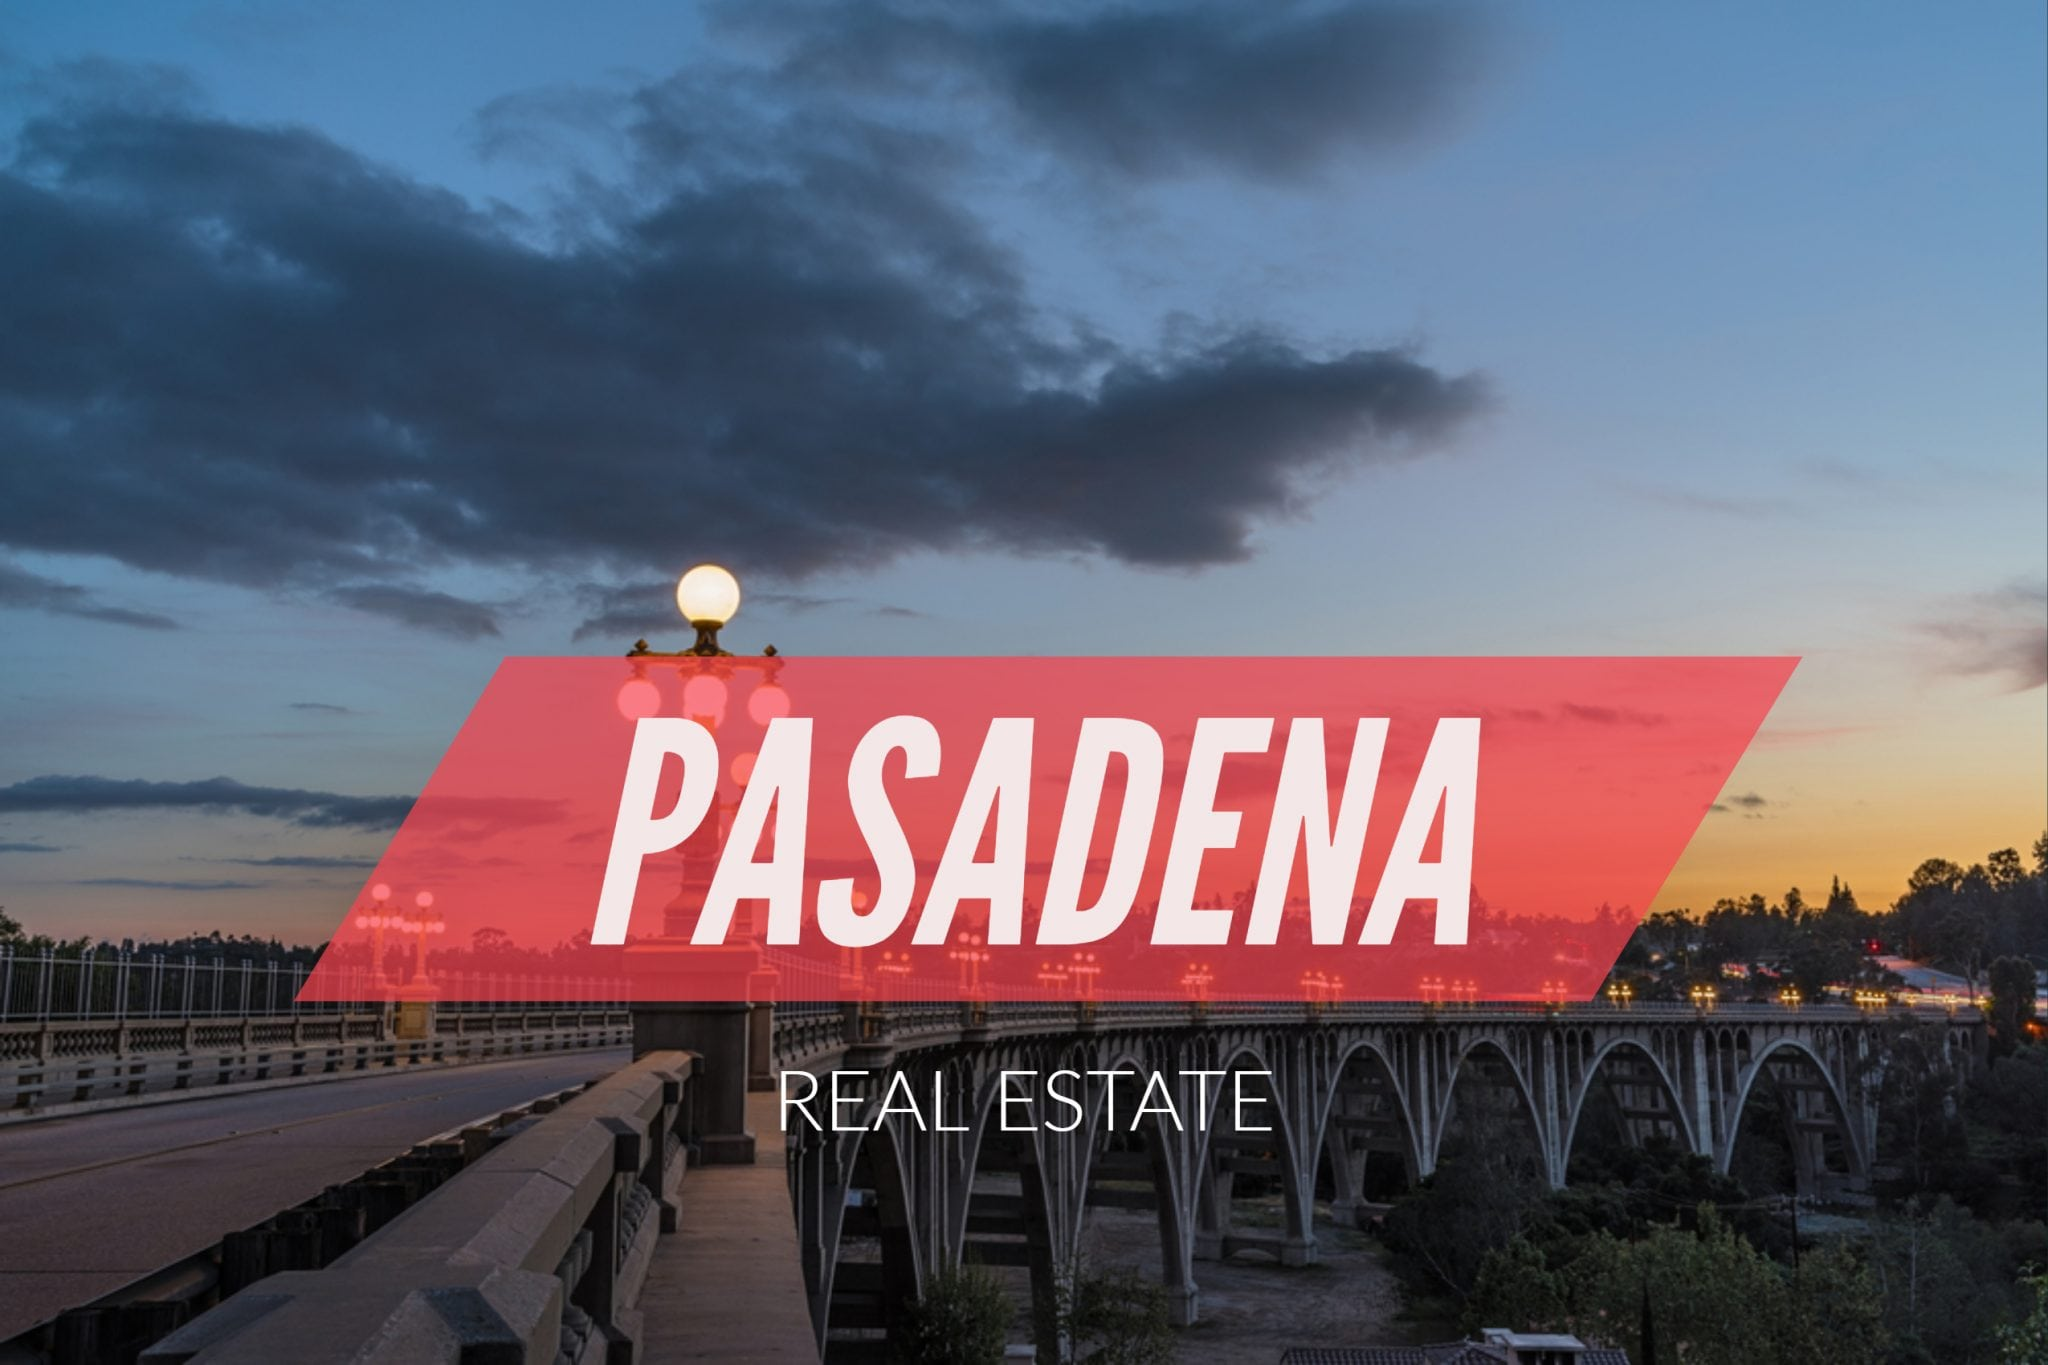 pasadena-real-estate-pasadena-real-estate-agent-pasadena-realtor-pasadena real estate agent pasadena real estate office pasadena real estate company best real estate company to work for los angeles which real estate company has the best training for new agents best pasadena realtor pasadena homes for sale pasadena real estate market